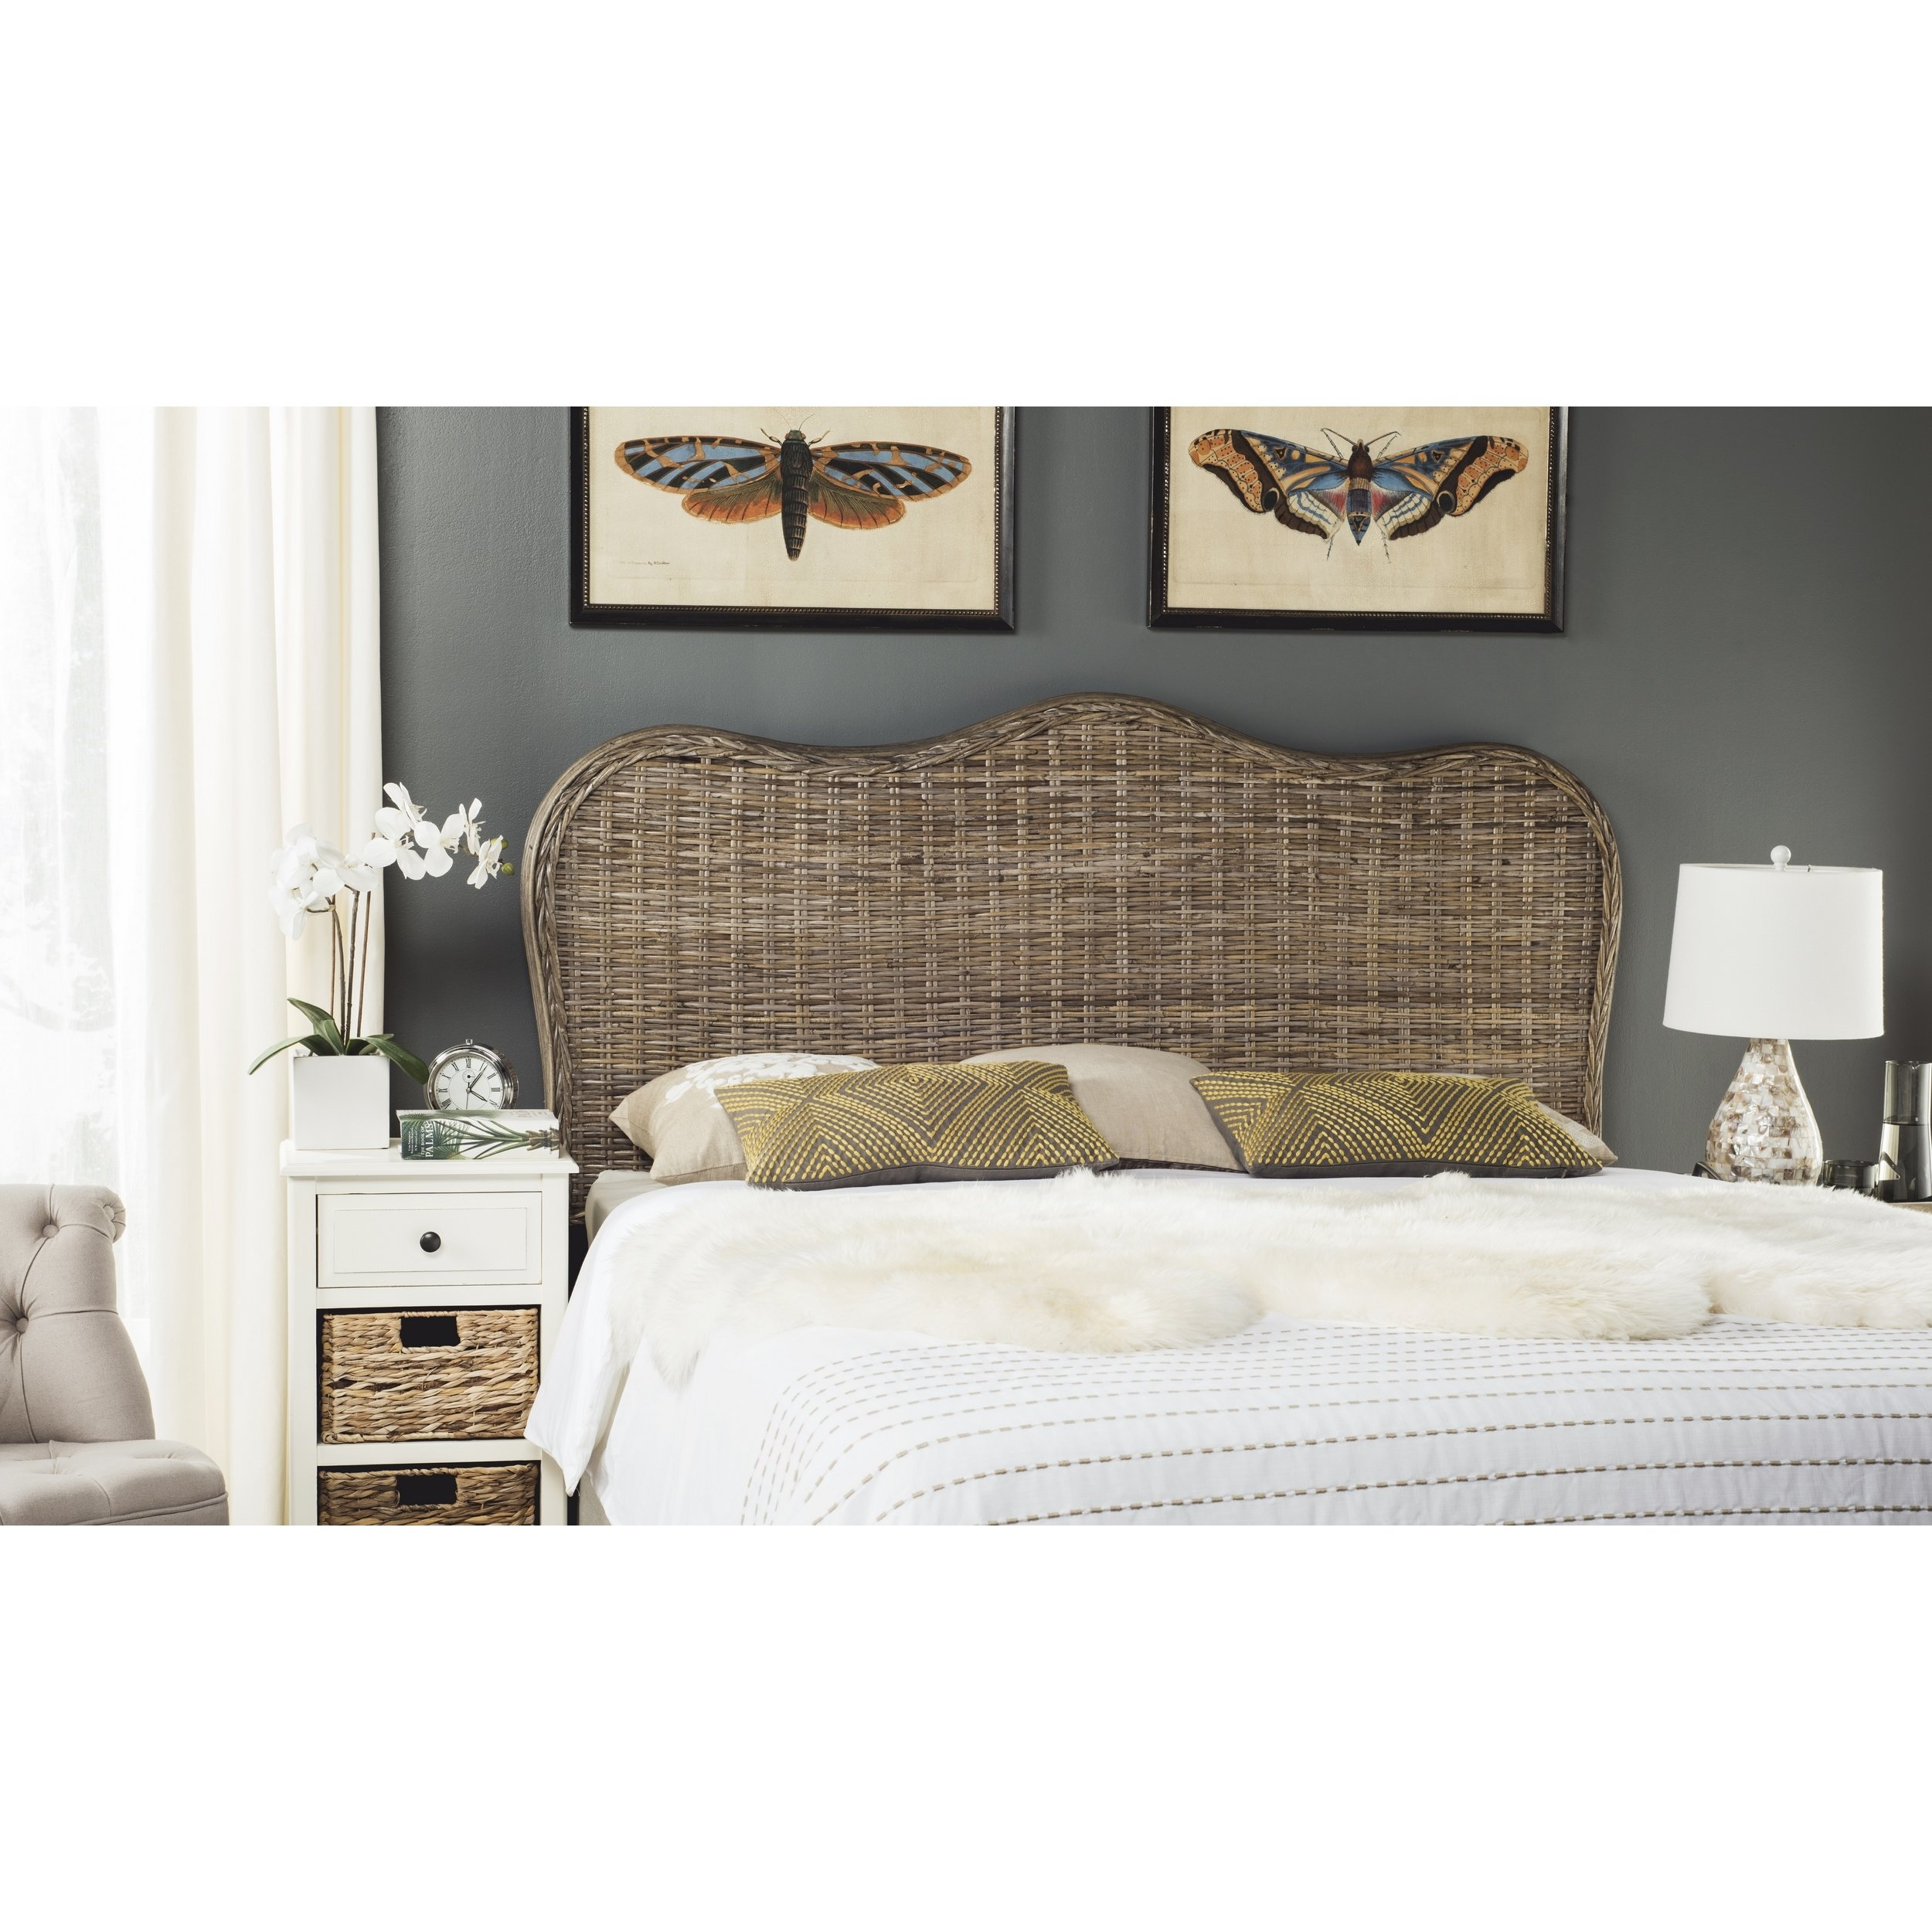 Safavieh Home Collection Imelda Grey Headboard (Queen)